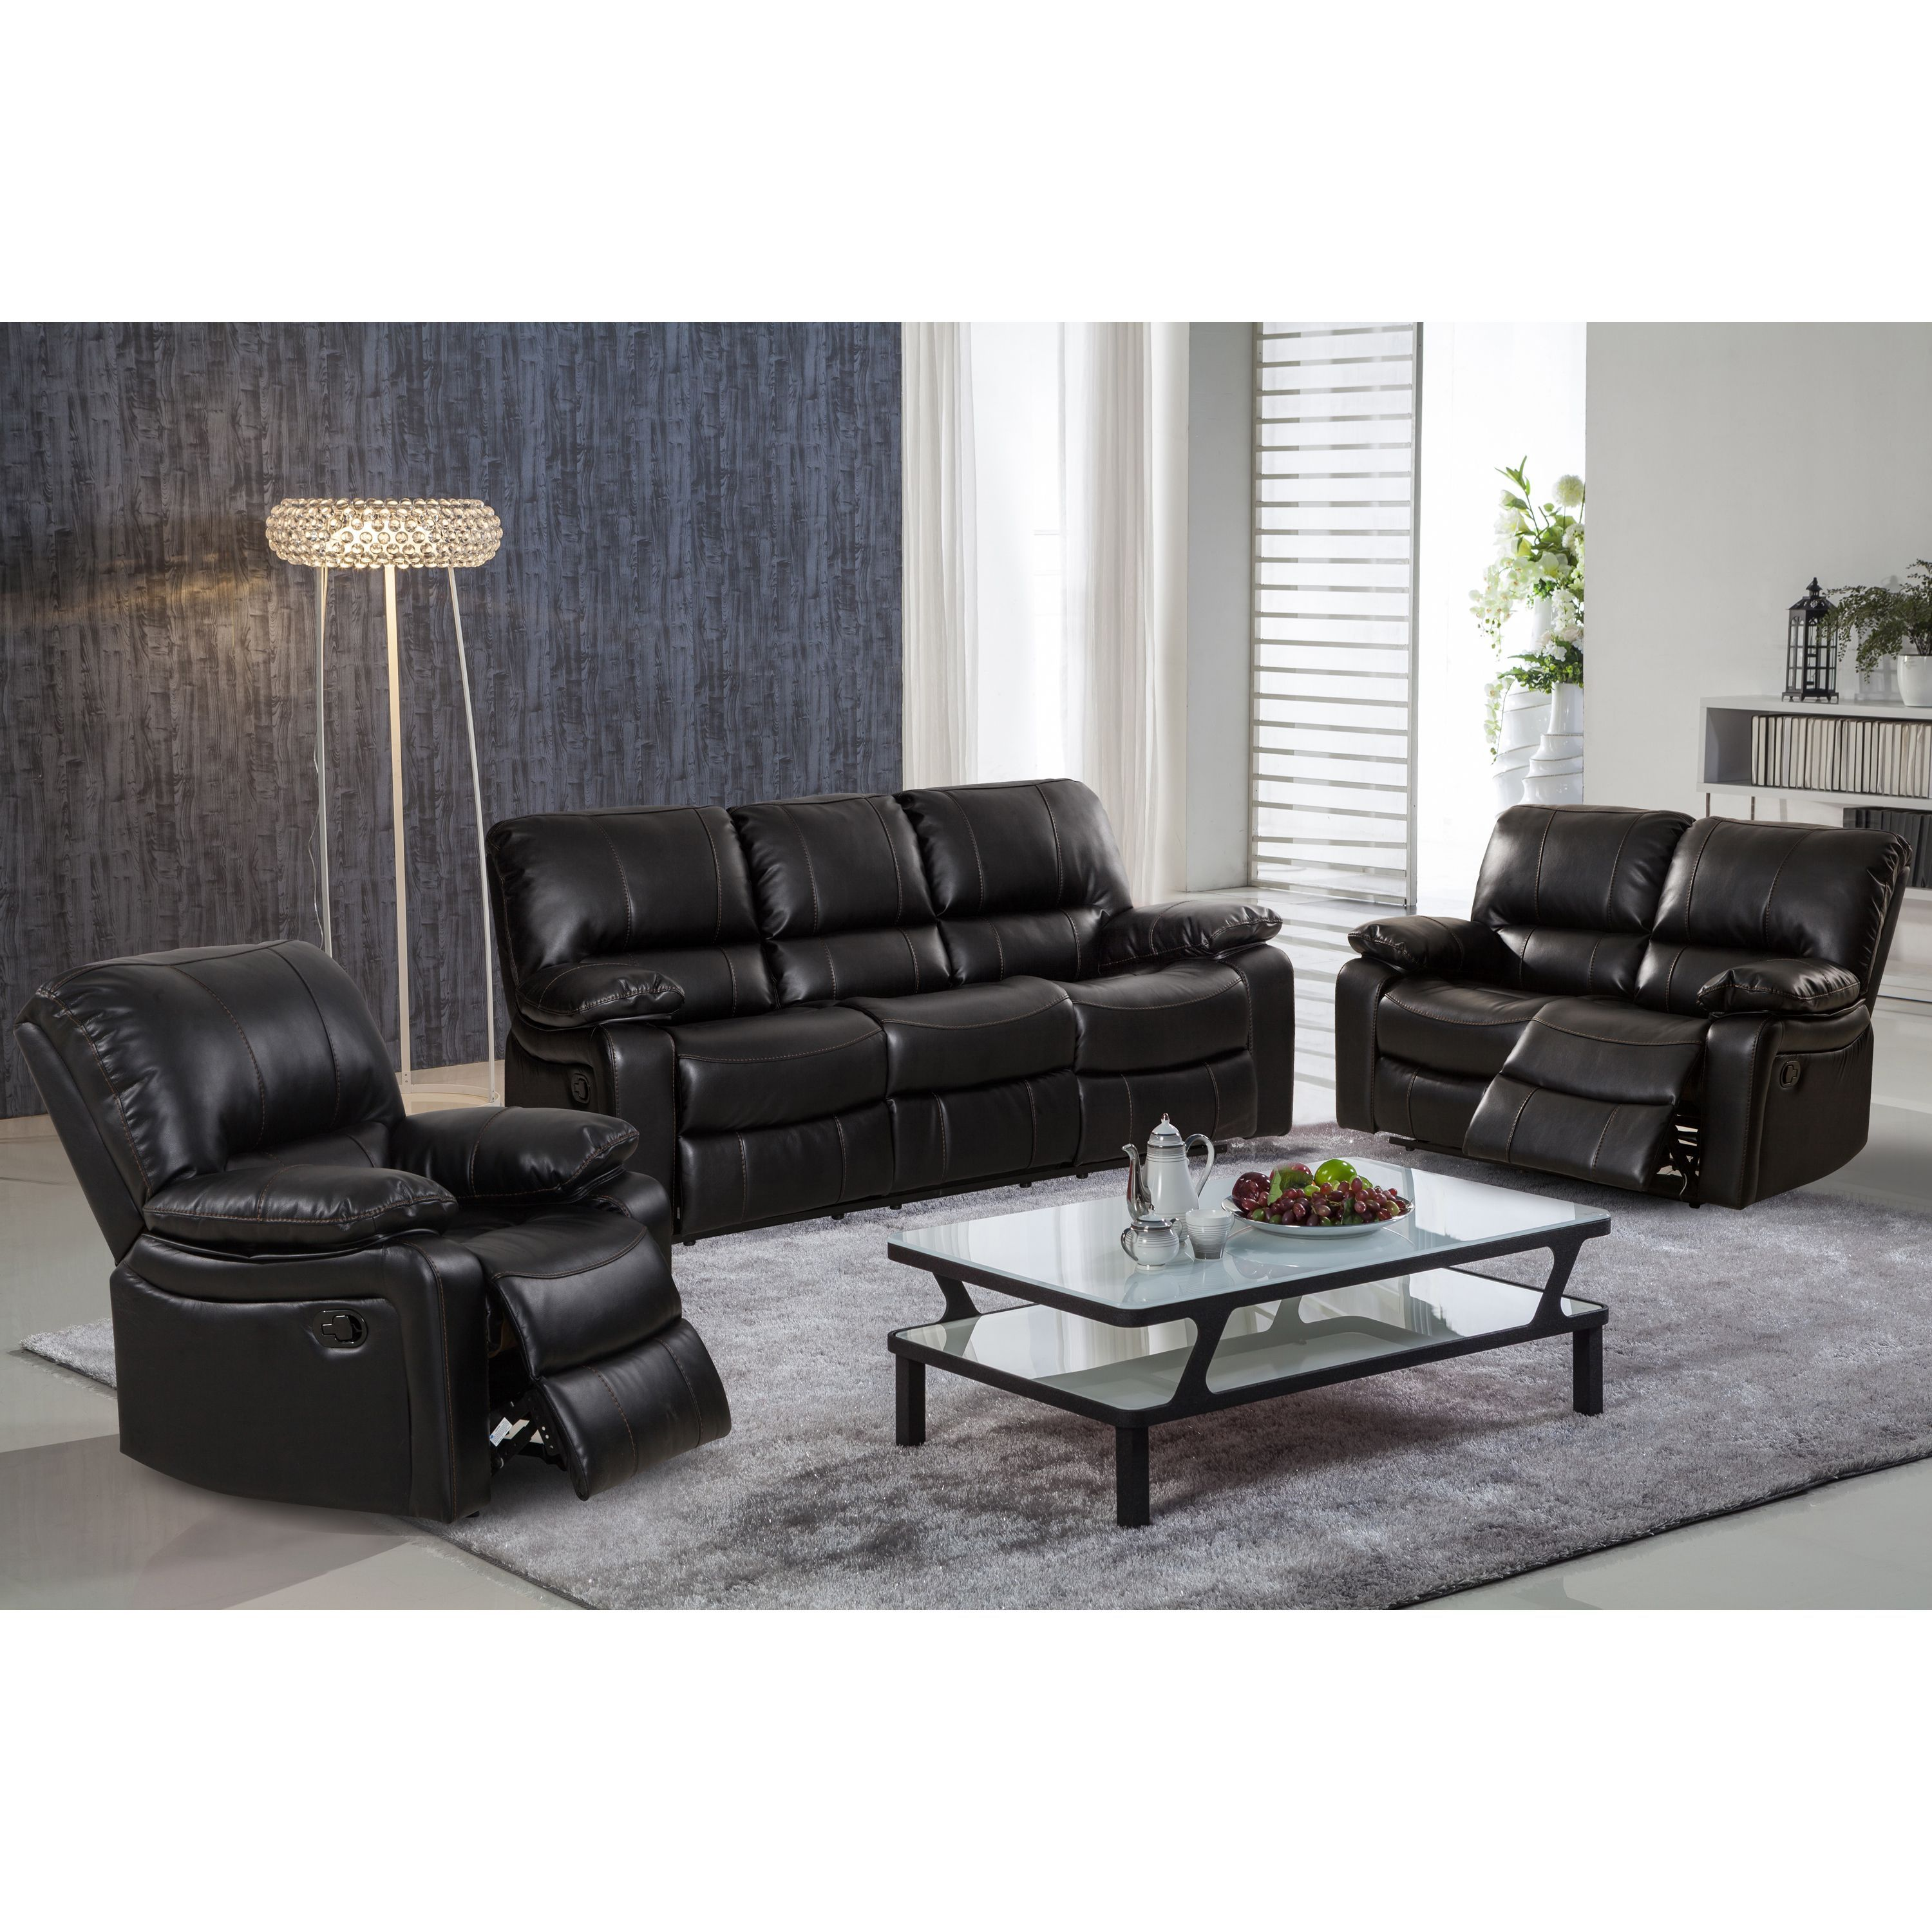 Nora Brown Leather Reclining 3 Pc Living Room Sofa Set Couch And Bed Samantha Gel Piece With